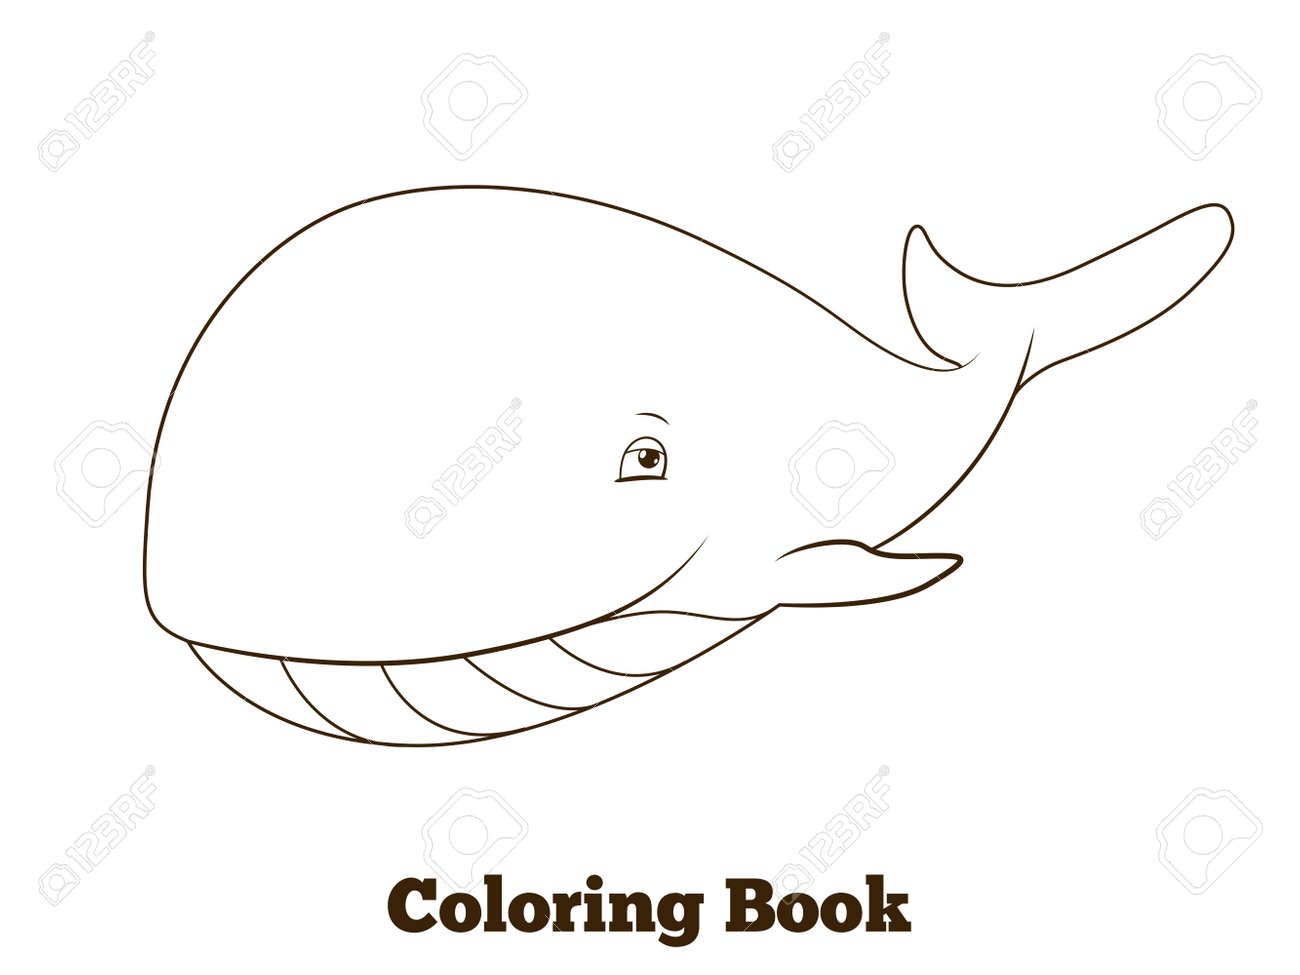 Coloring Book Whale Cartoon Educational Vector Illustration